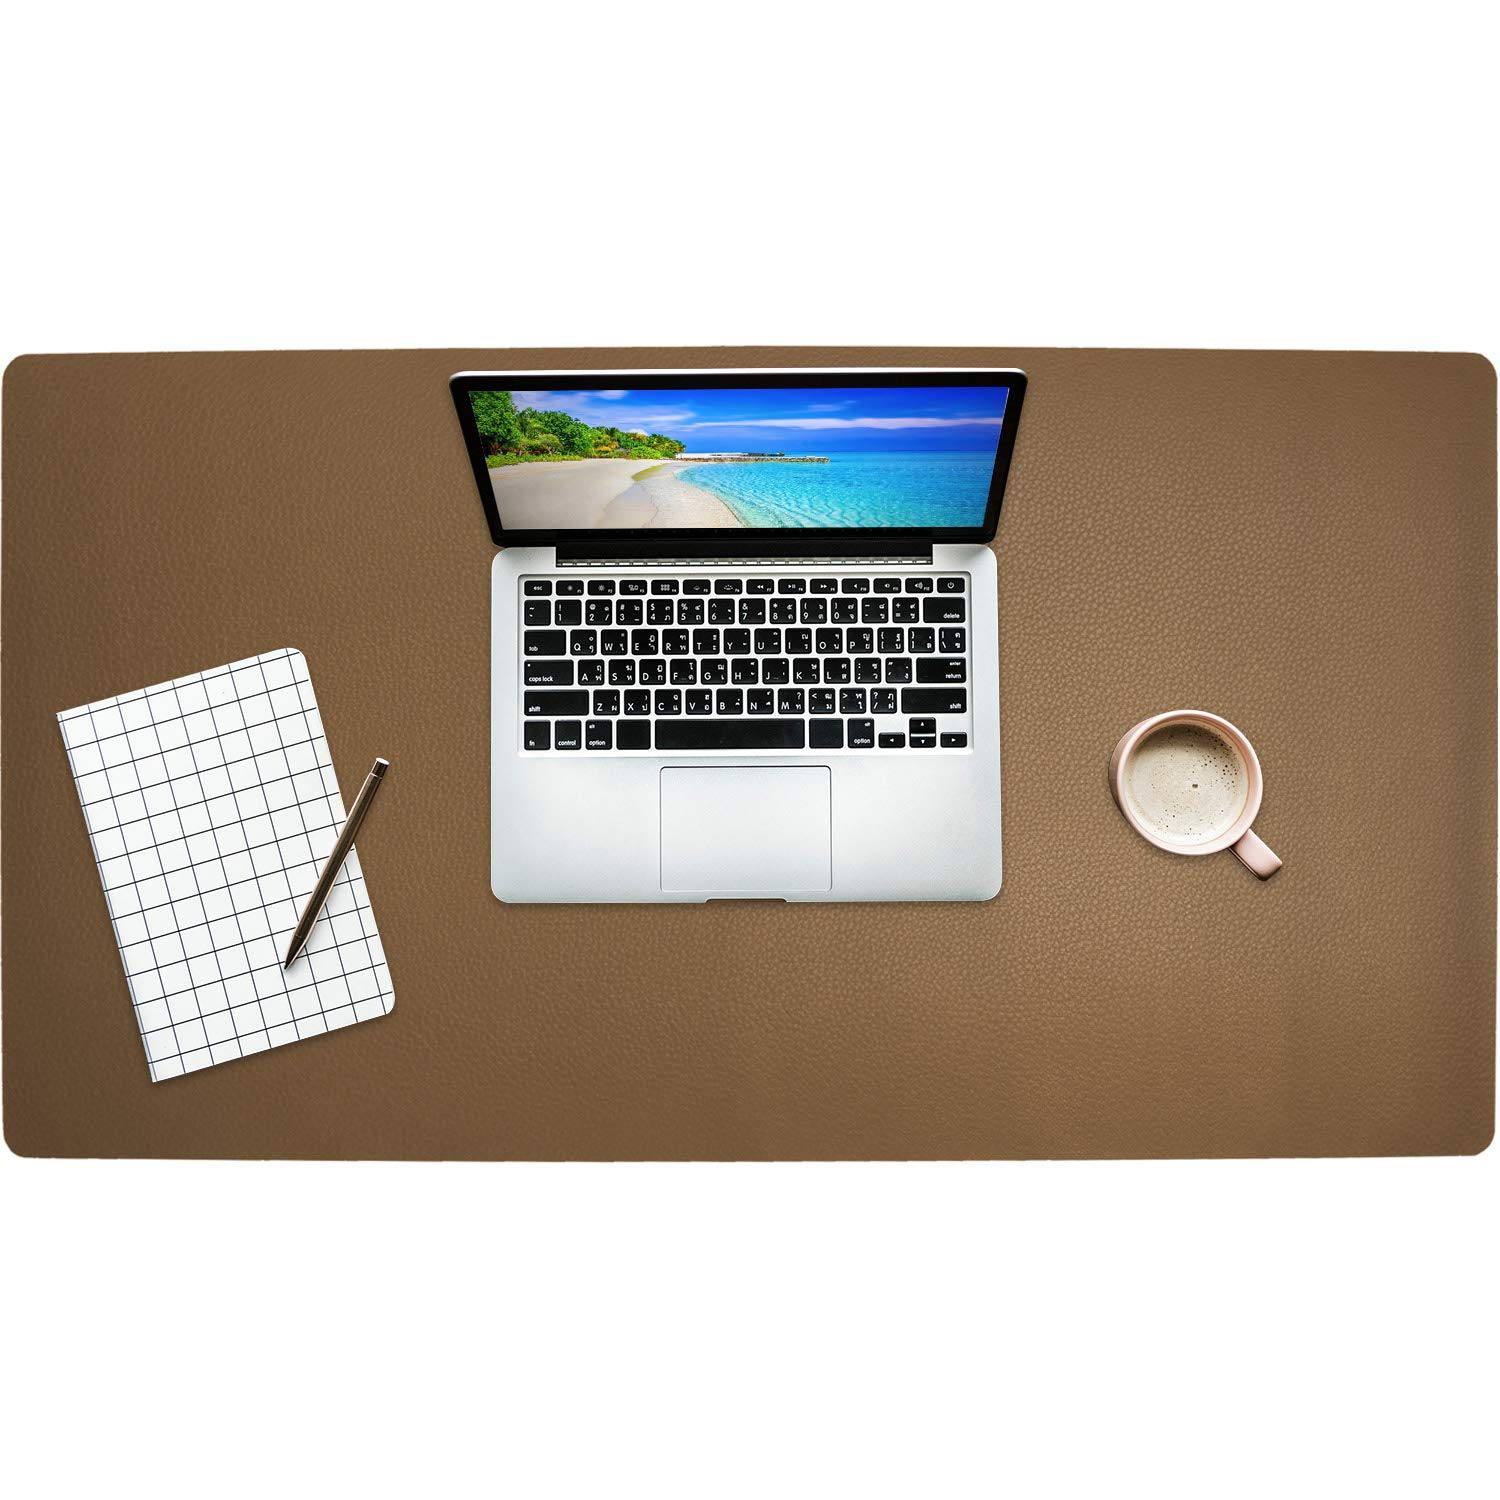 """Getfitsoo Leather Desk Pad, Laptop Desk Mat, Waterproof Desk Writing Pad at Office and Home, Super Comfortable Surface Leather Mat,31.5""""x15.7"""" Perfect Size Leather Desk Blotter (Khaki)"""